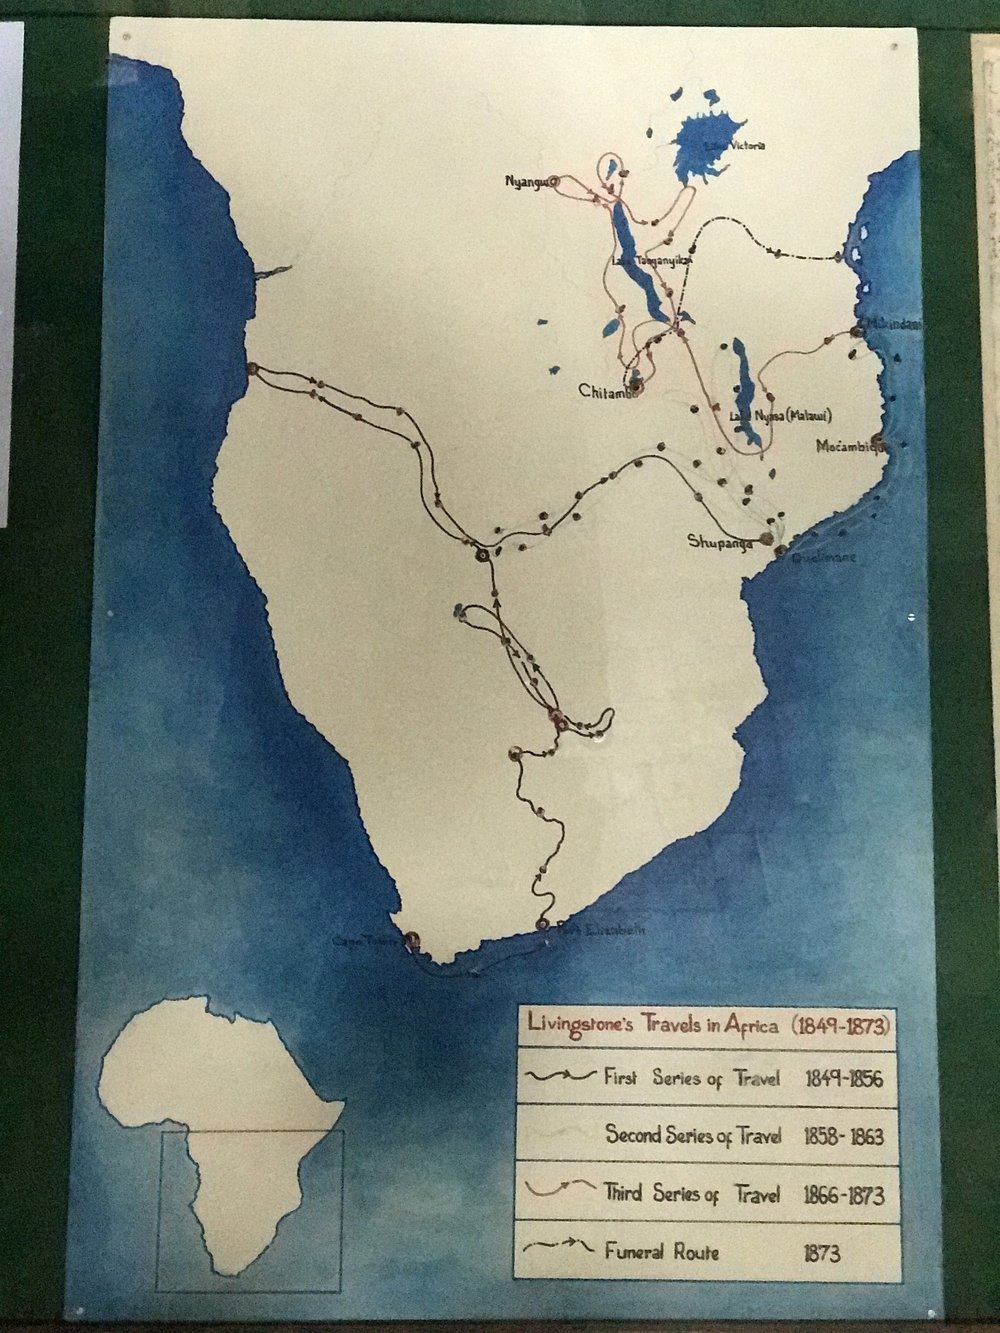 The various paths taken by Livingstone and his team through present day Malawi